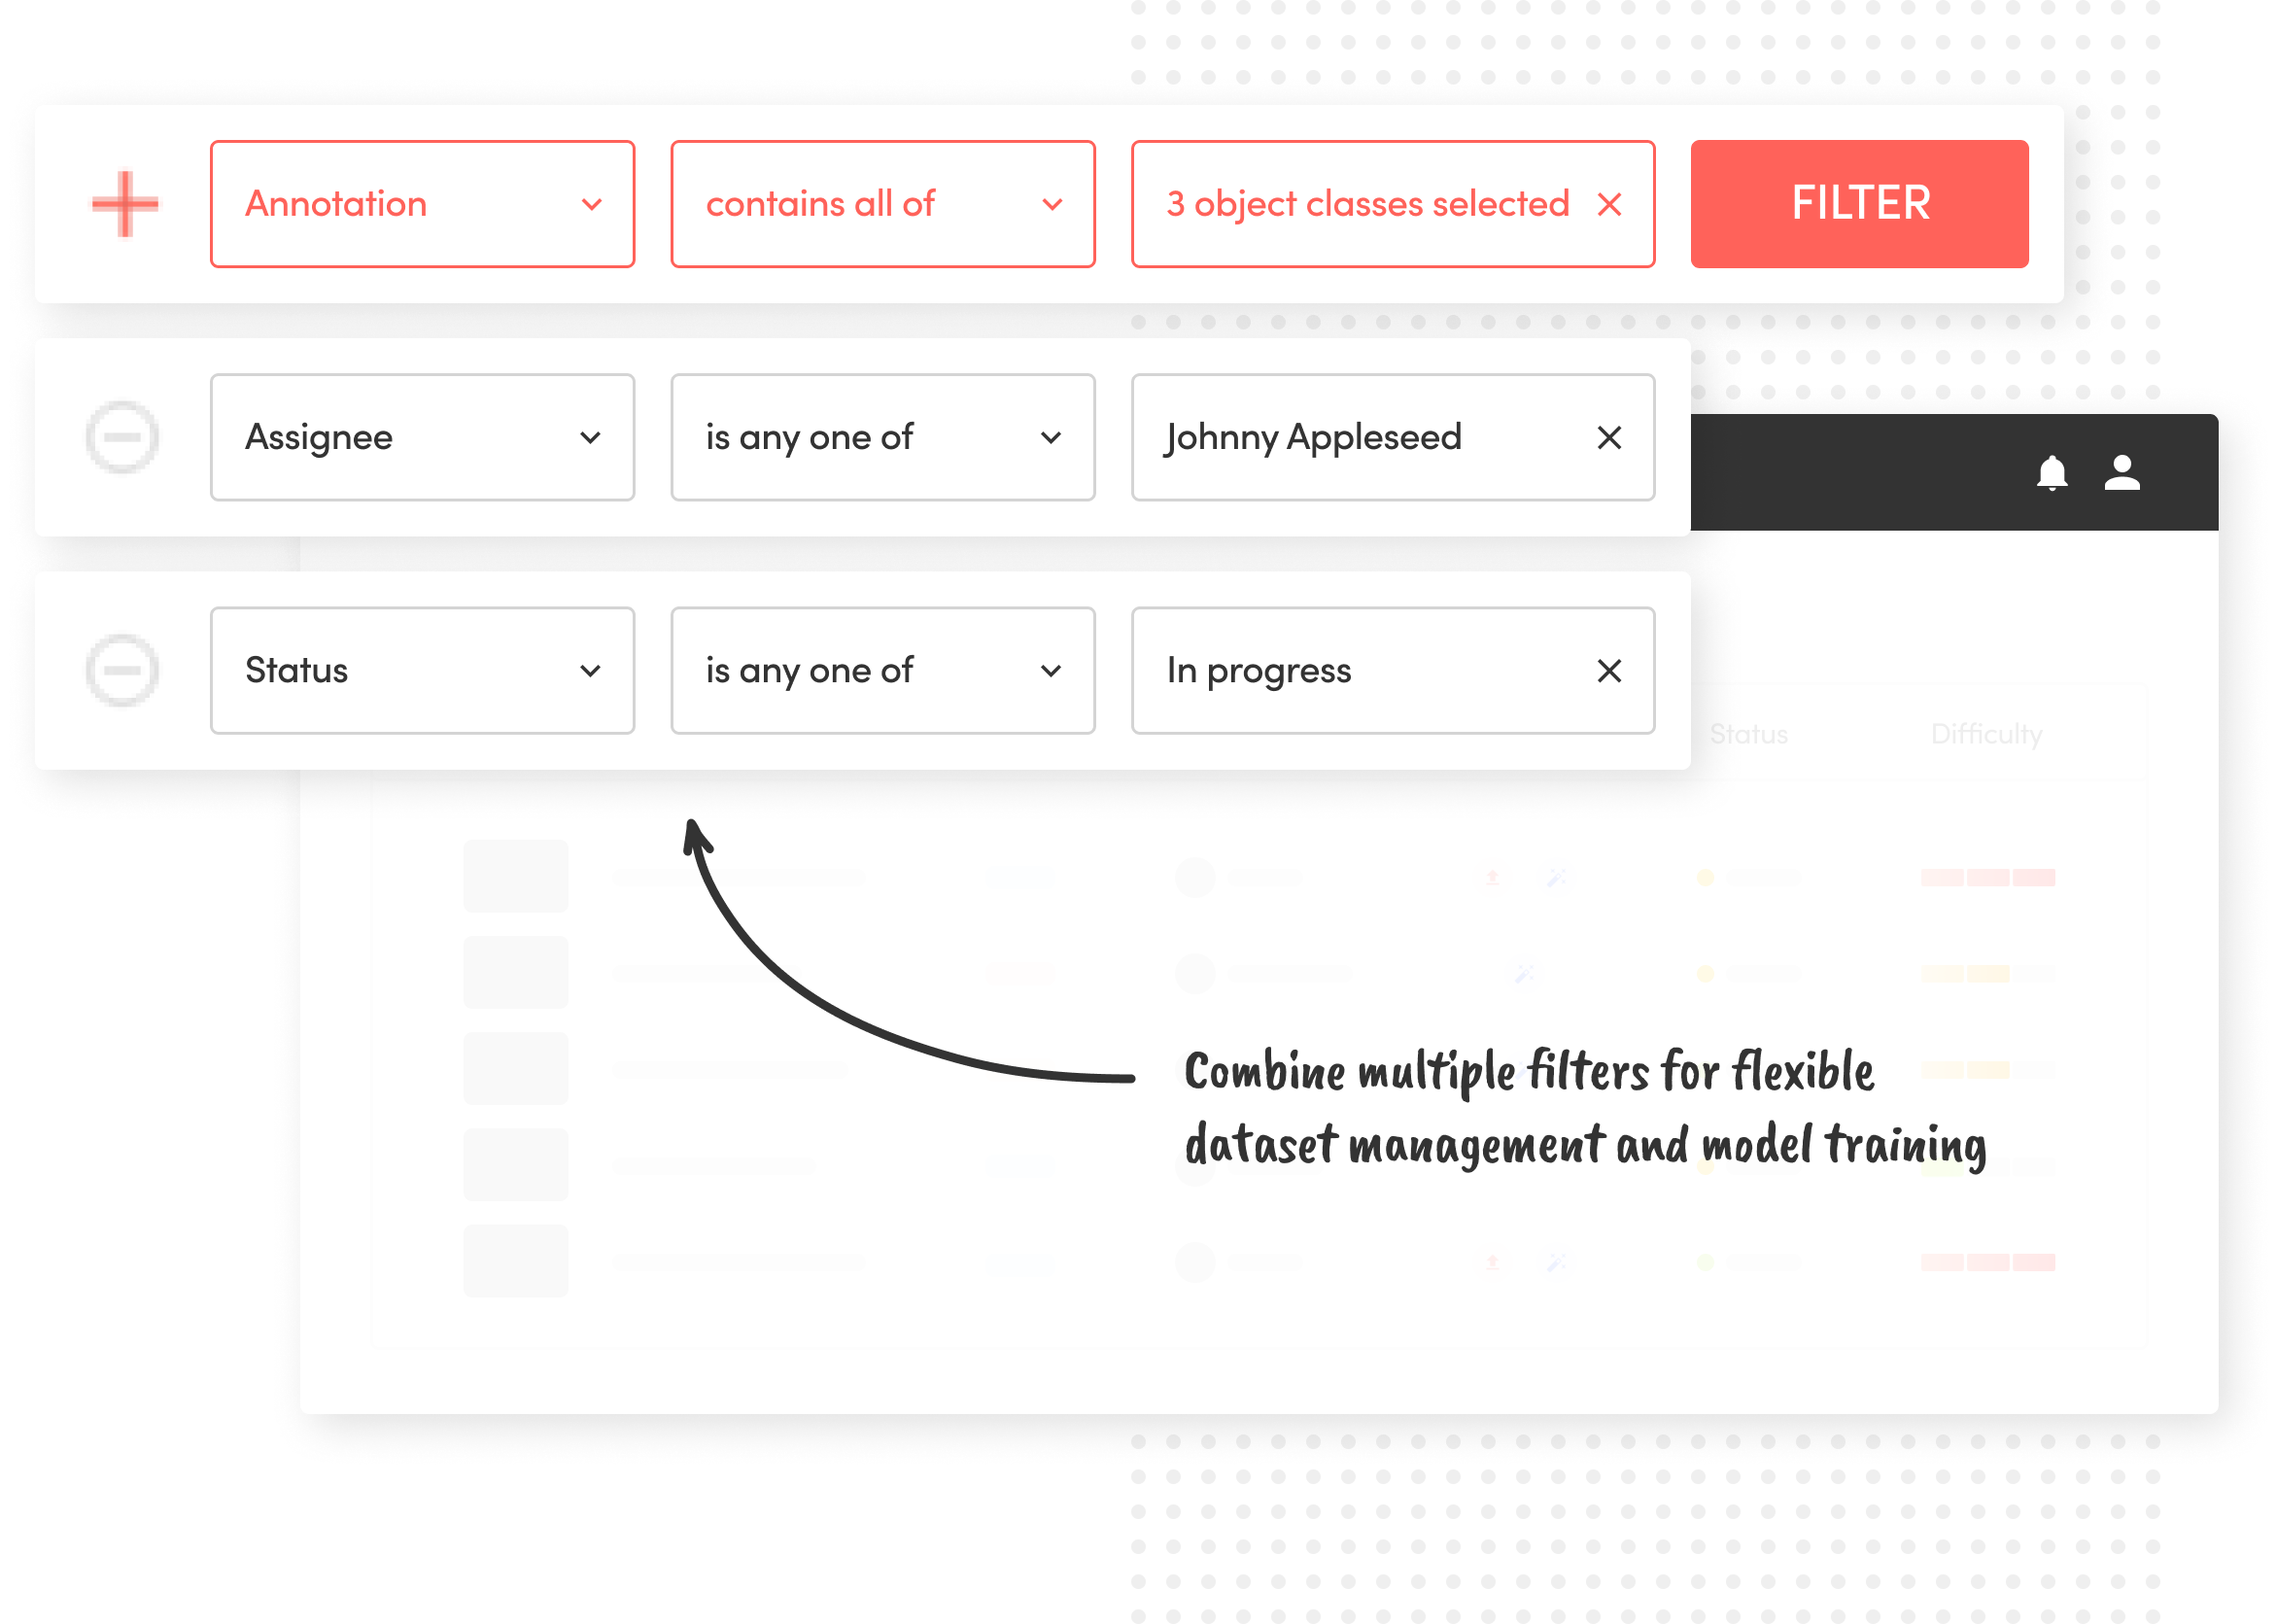 Filter&Search: Combine multiple filters for flexible dataset management and model training